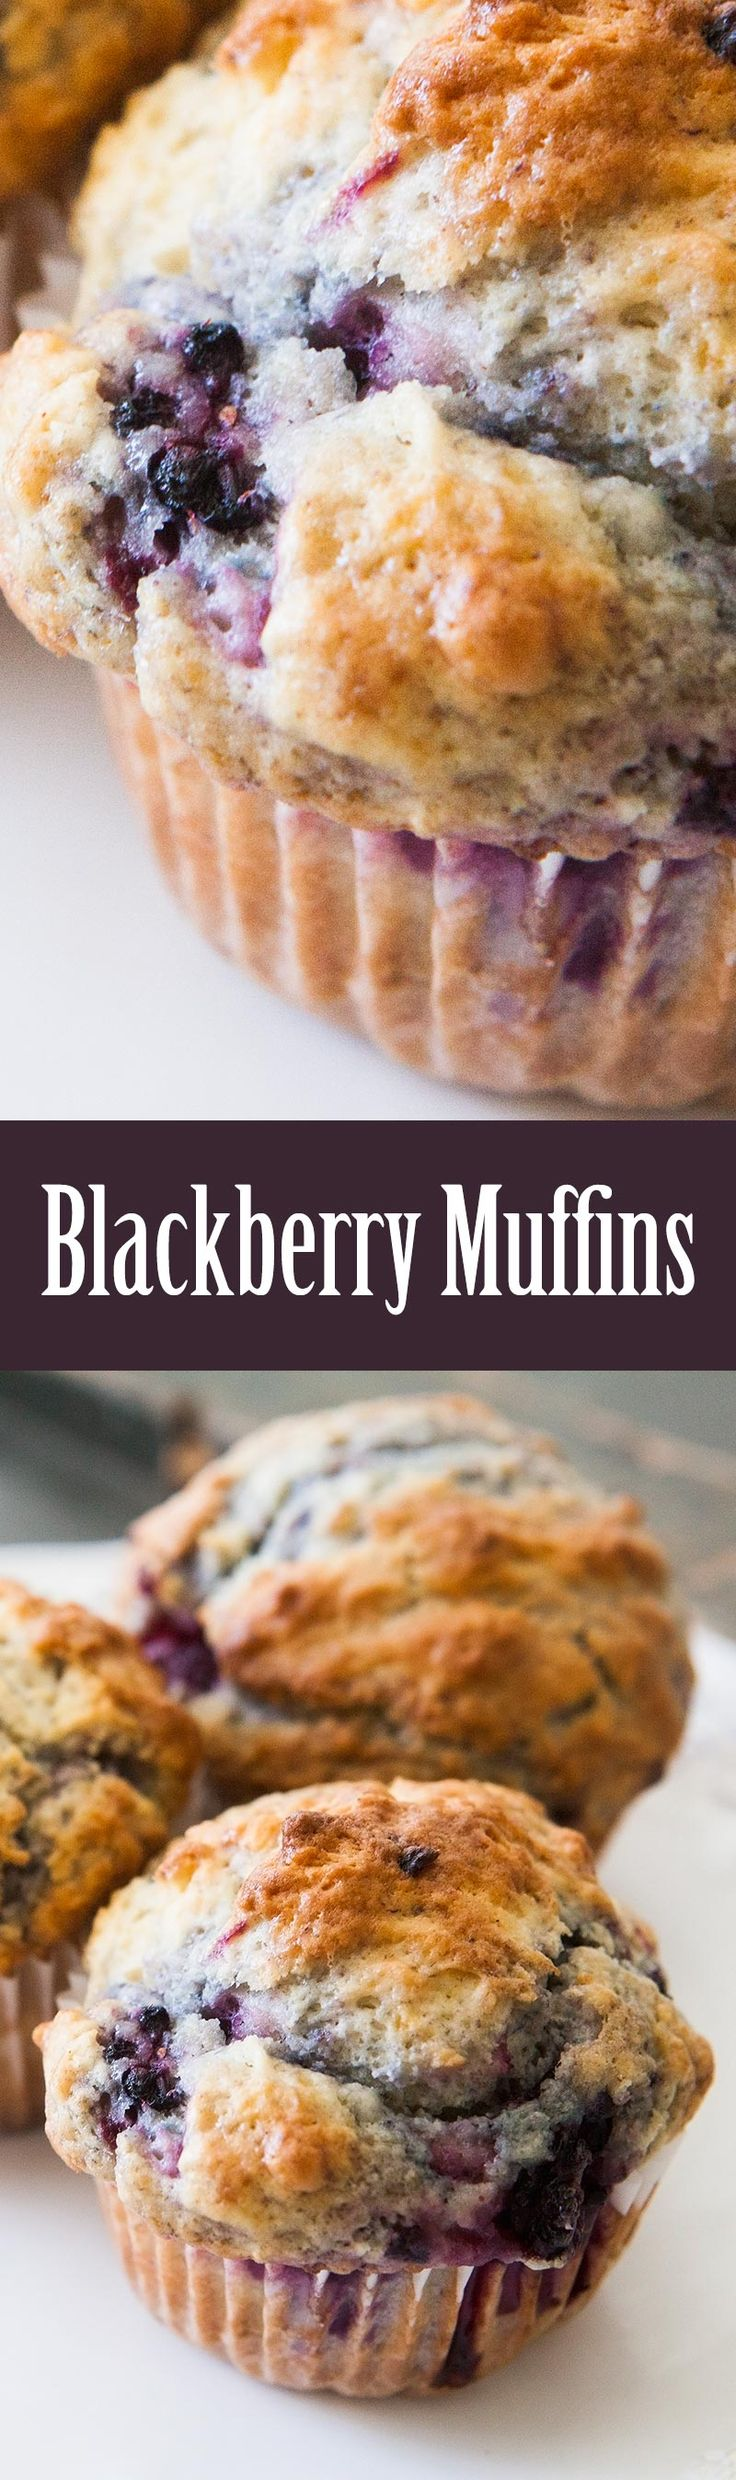 Rich, moist, luscious blackberry muffins! These muffins are a family favorite, filled with juicy berries! GREAT sweet treat for a party #GameDay #SuperBowl On SimplyRecipes.com